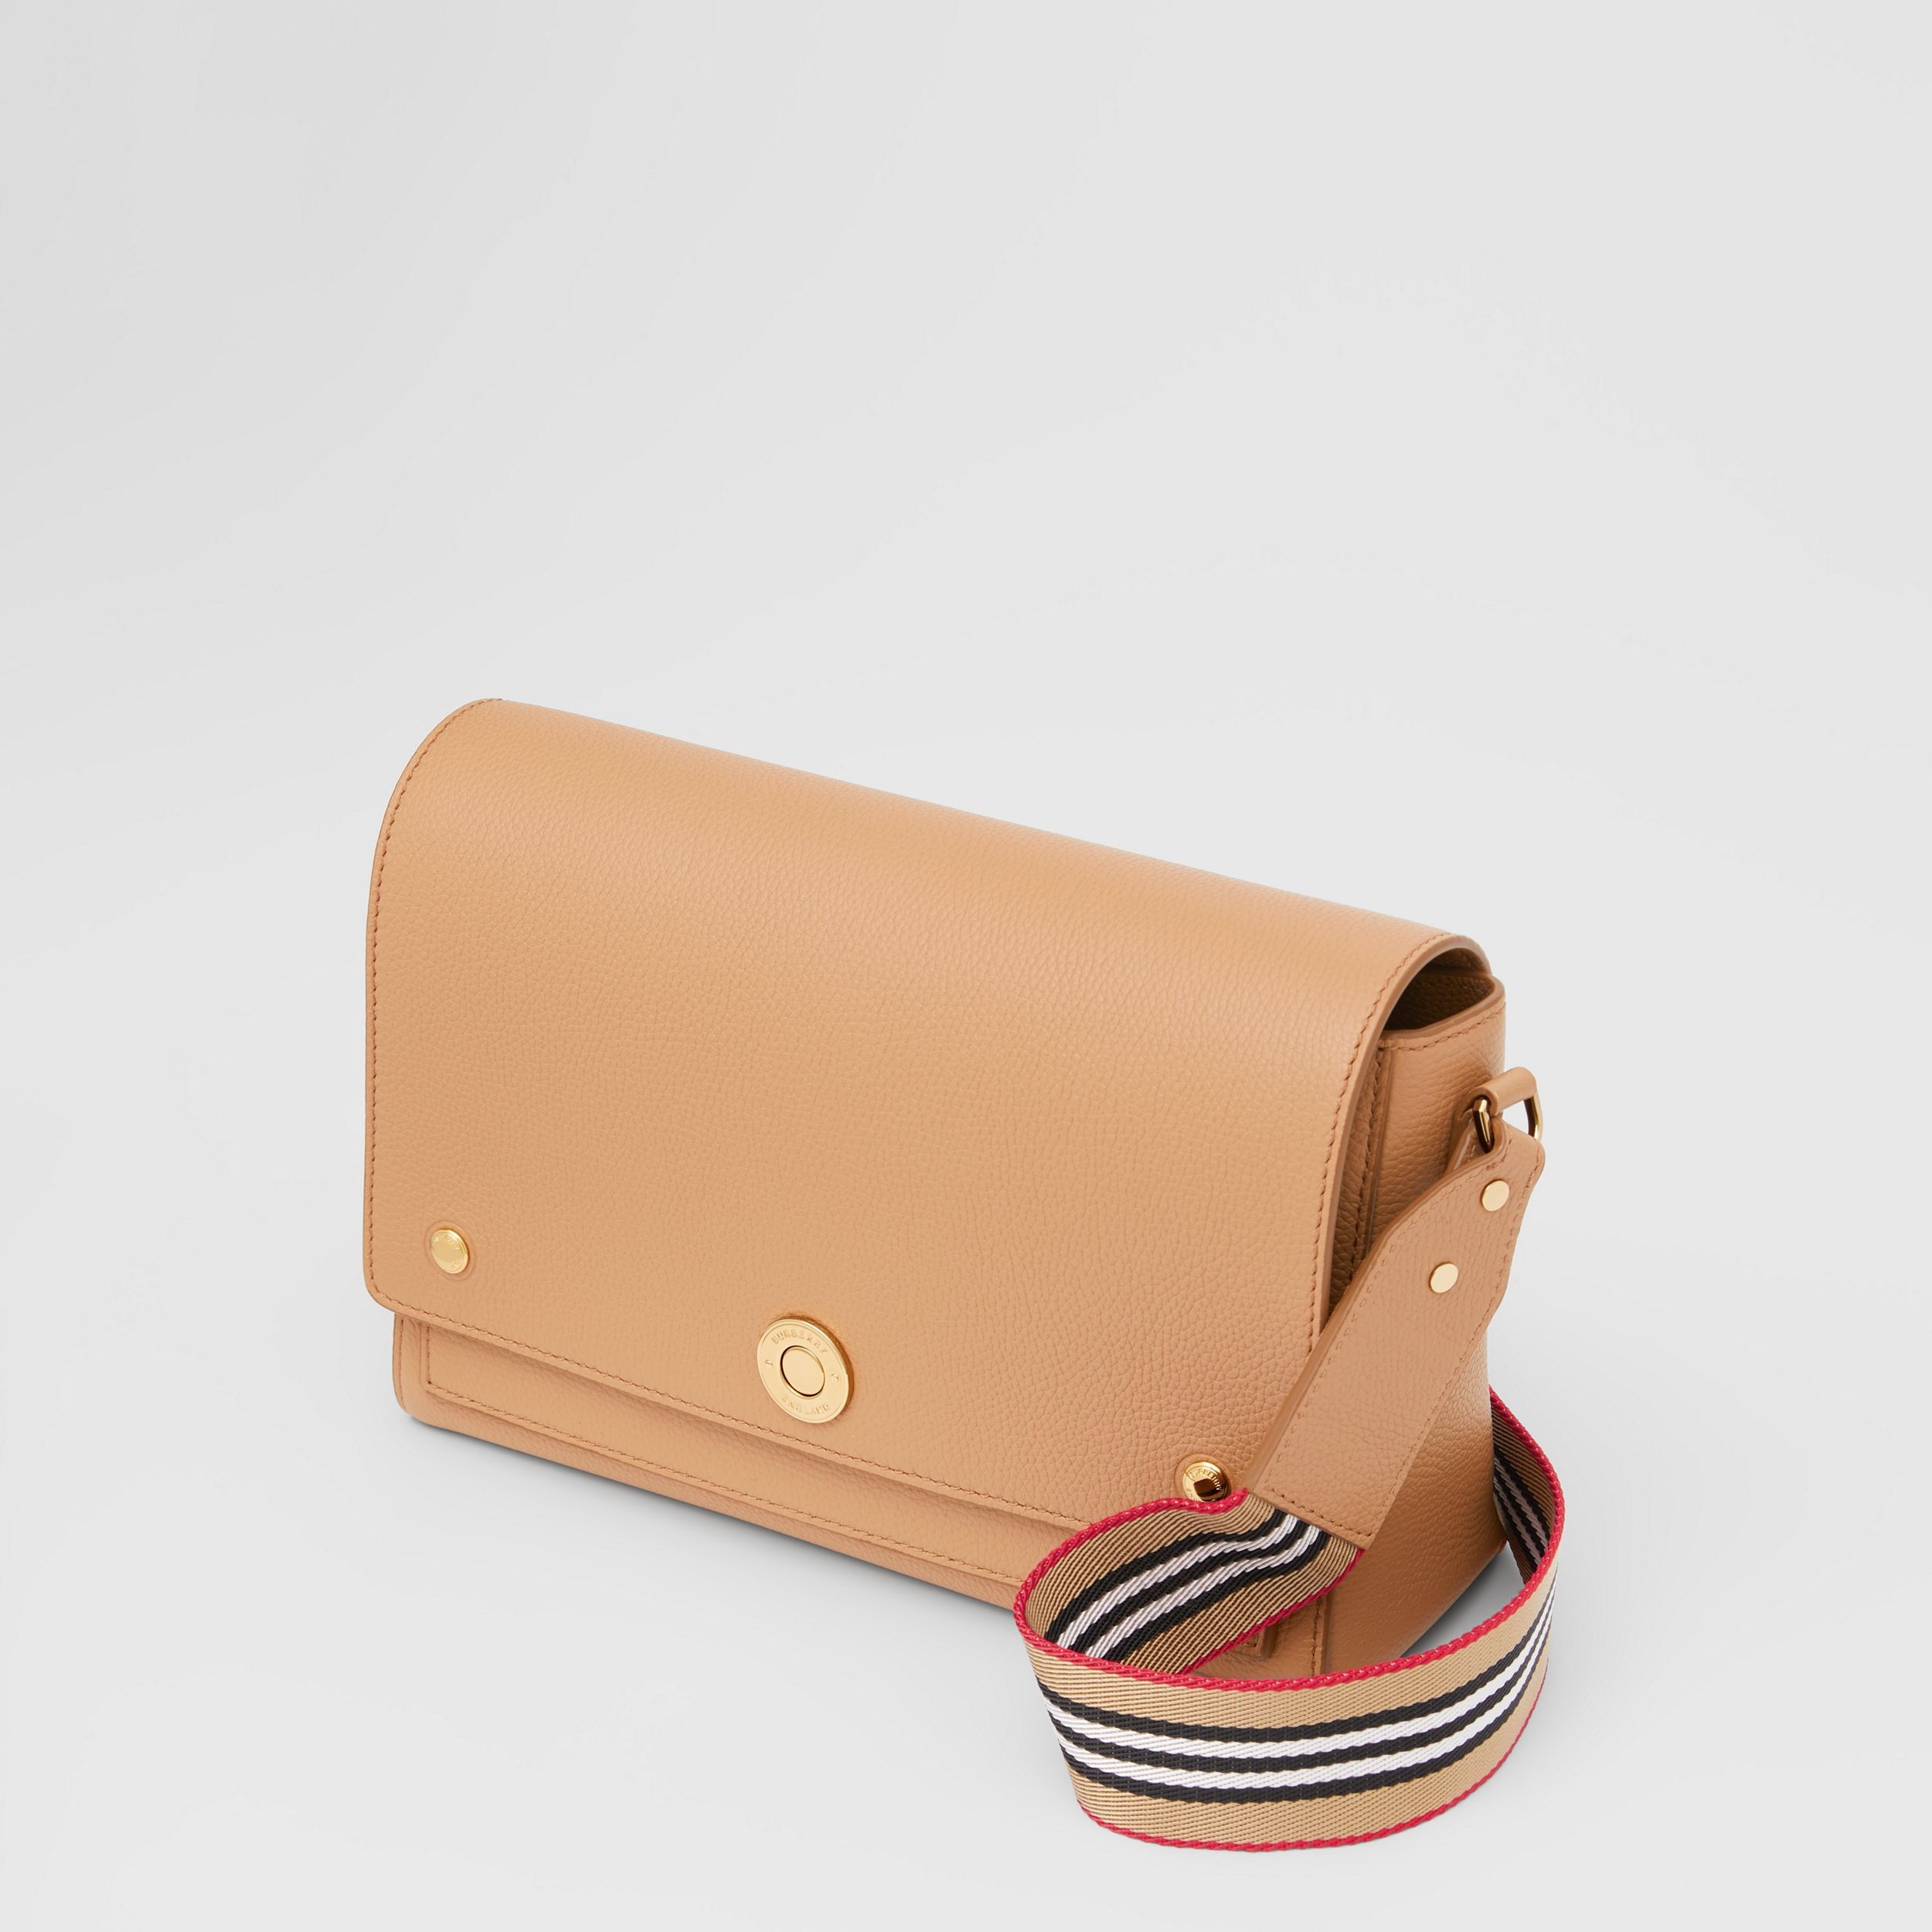 Grainy Leather Note Crossbody Bag in Camel - Women | Burberry Hong Kong S.A.R. - 4